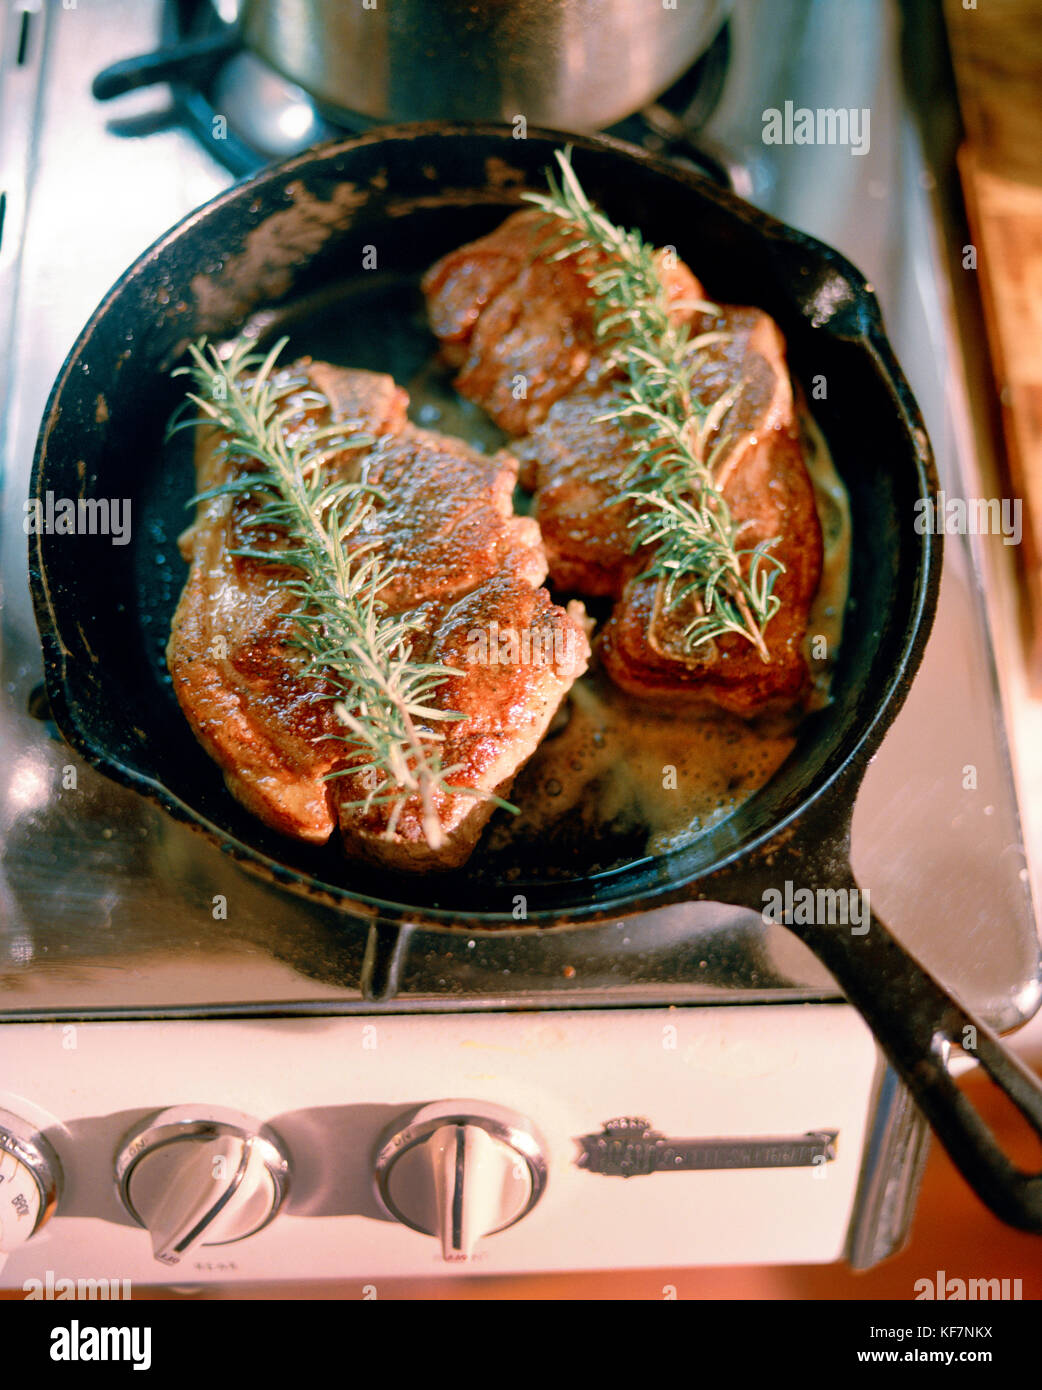 USA, California, Sonoma, pork being seared in a cast-iron pan, Brick House Bungalows - Stock Image